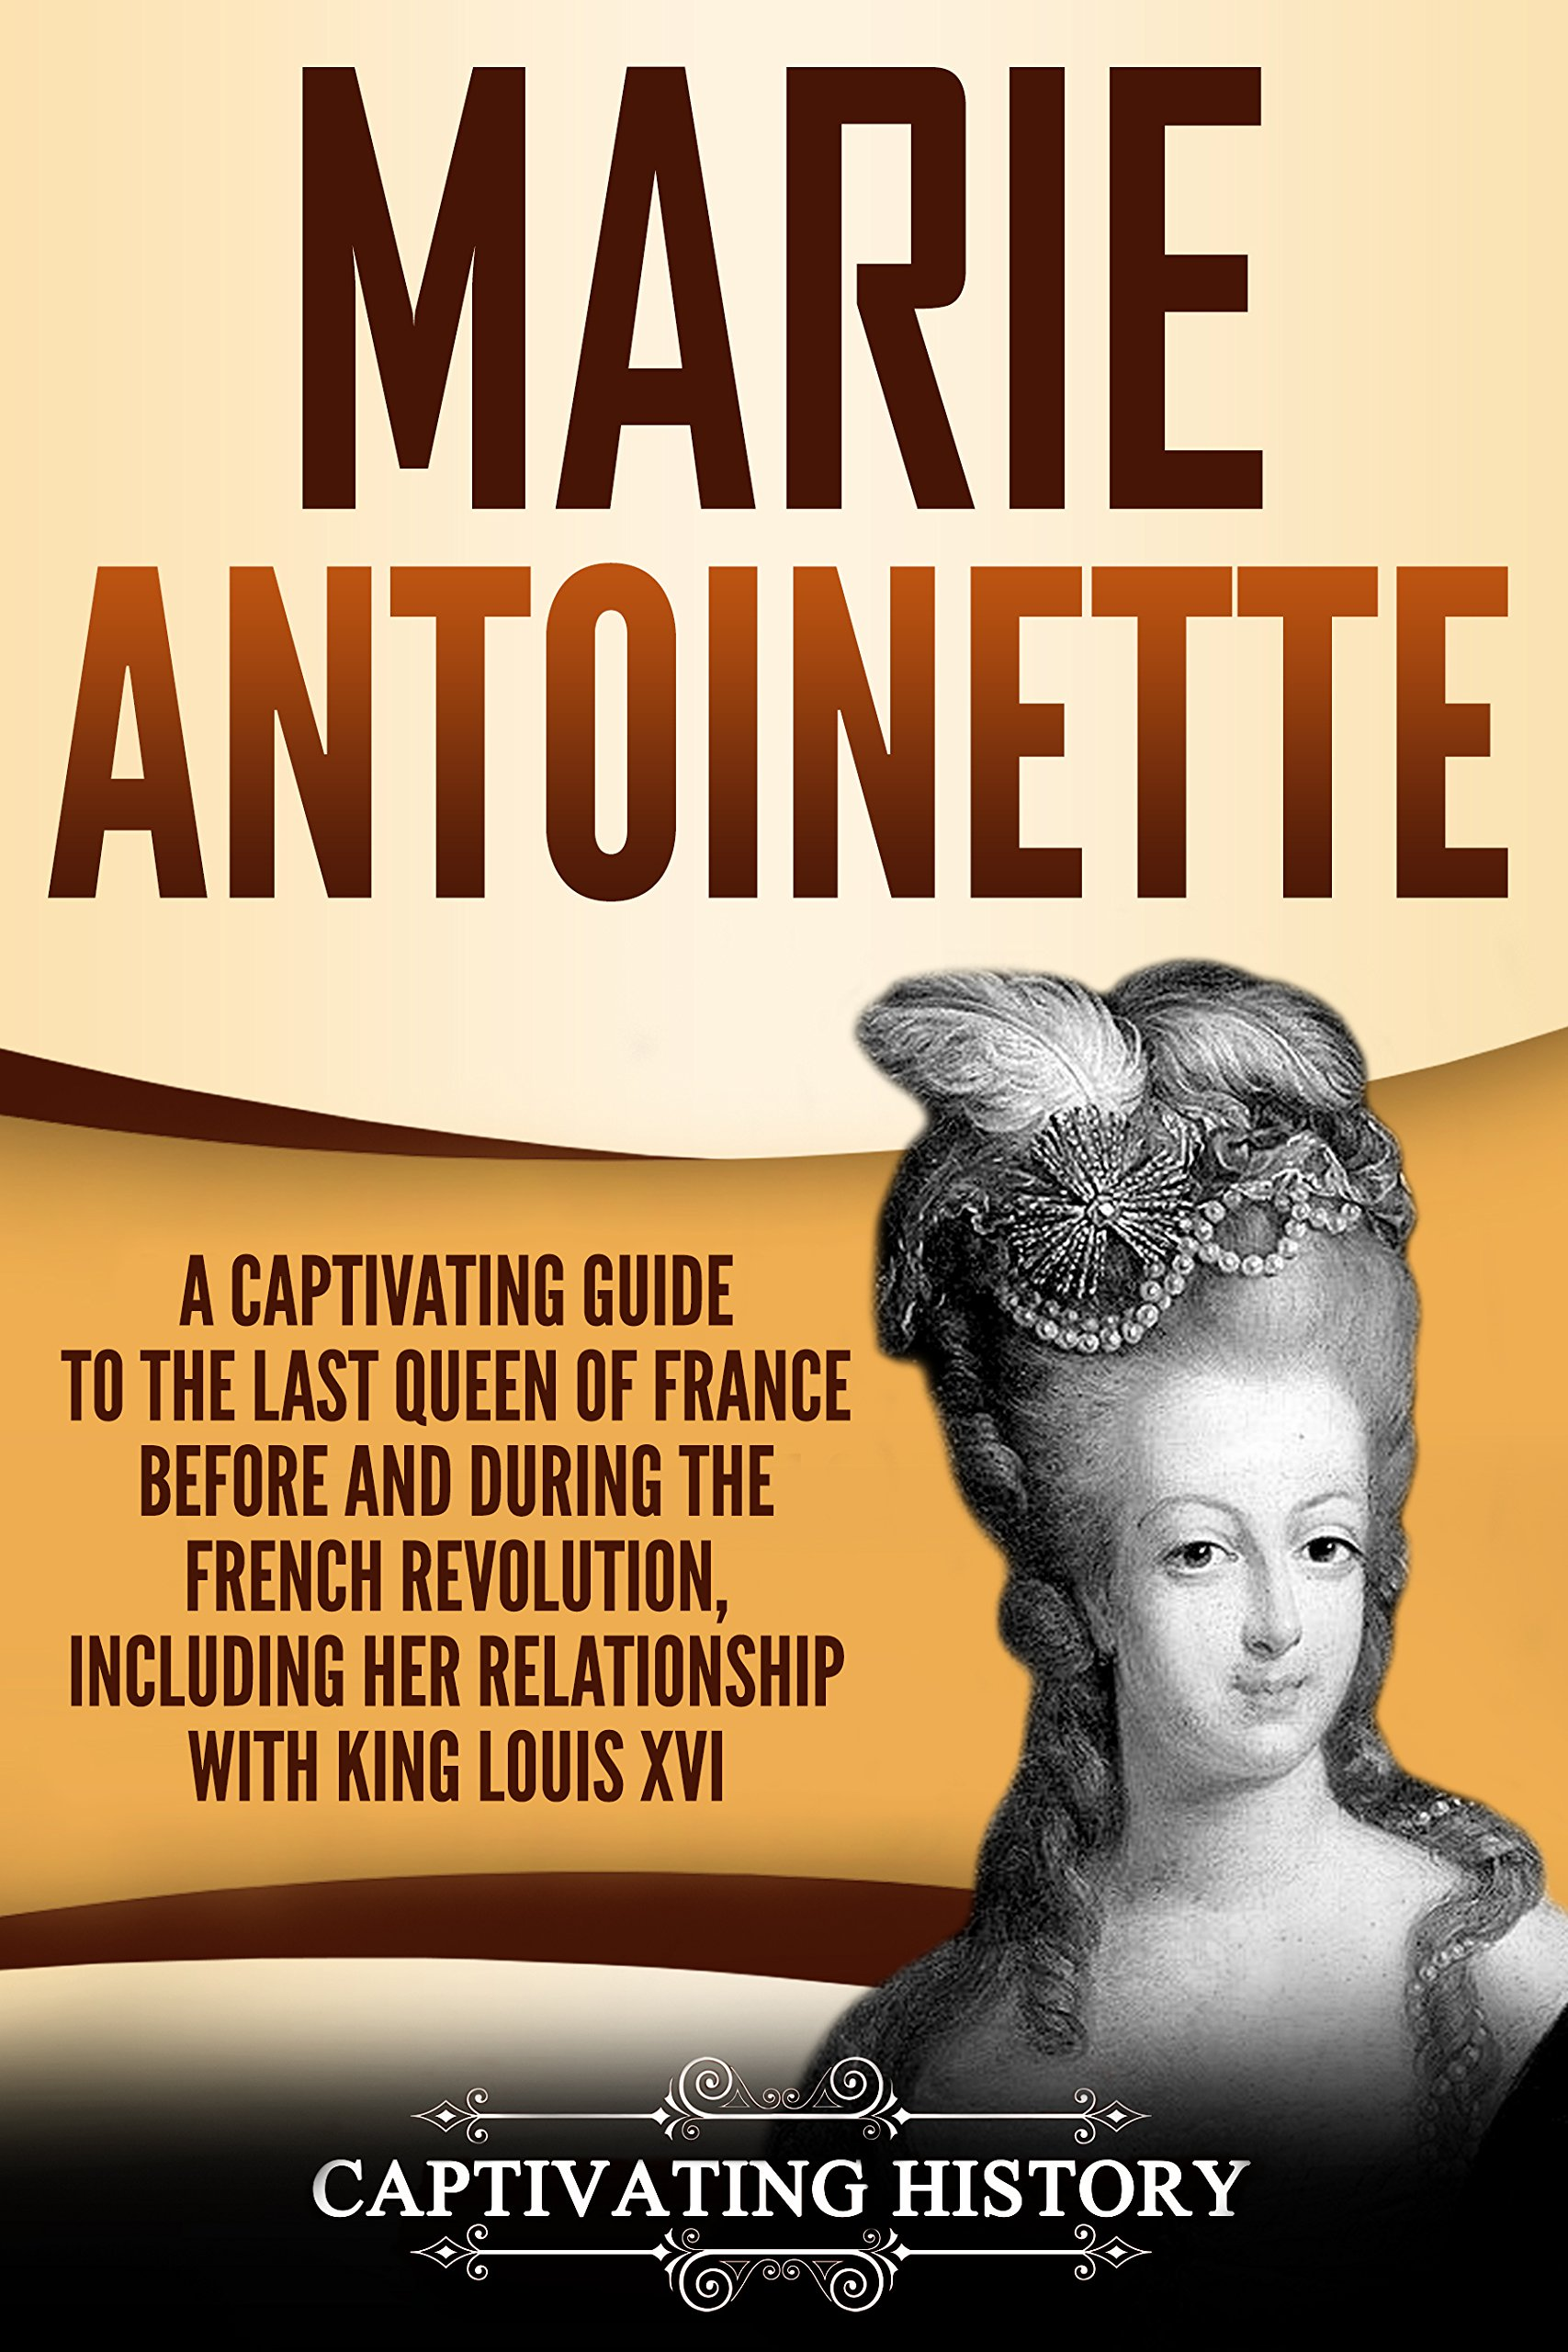 Marie Antoinette: A Captivating Guide to the Last Queen of France Before and During the French Revolution Including Her Relationship with King Louis XVI (English Edition)